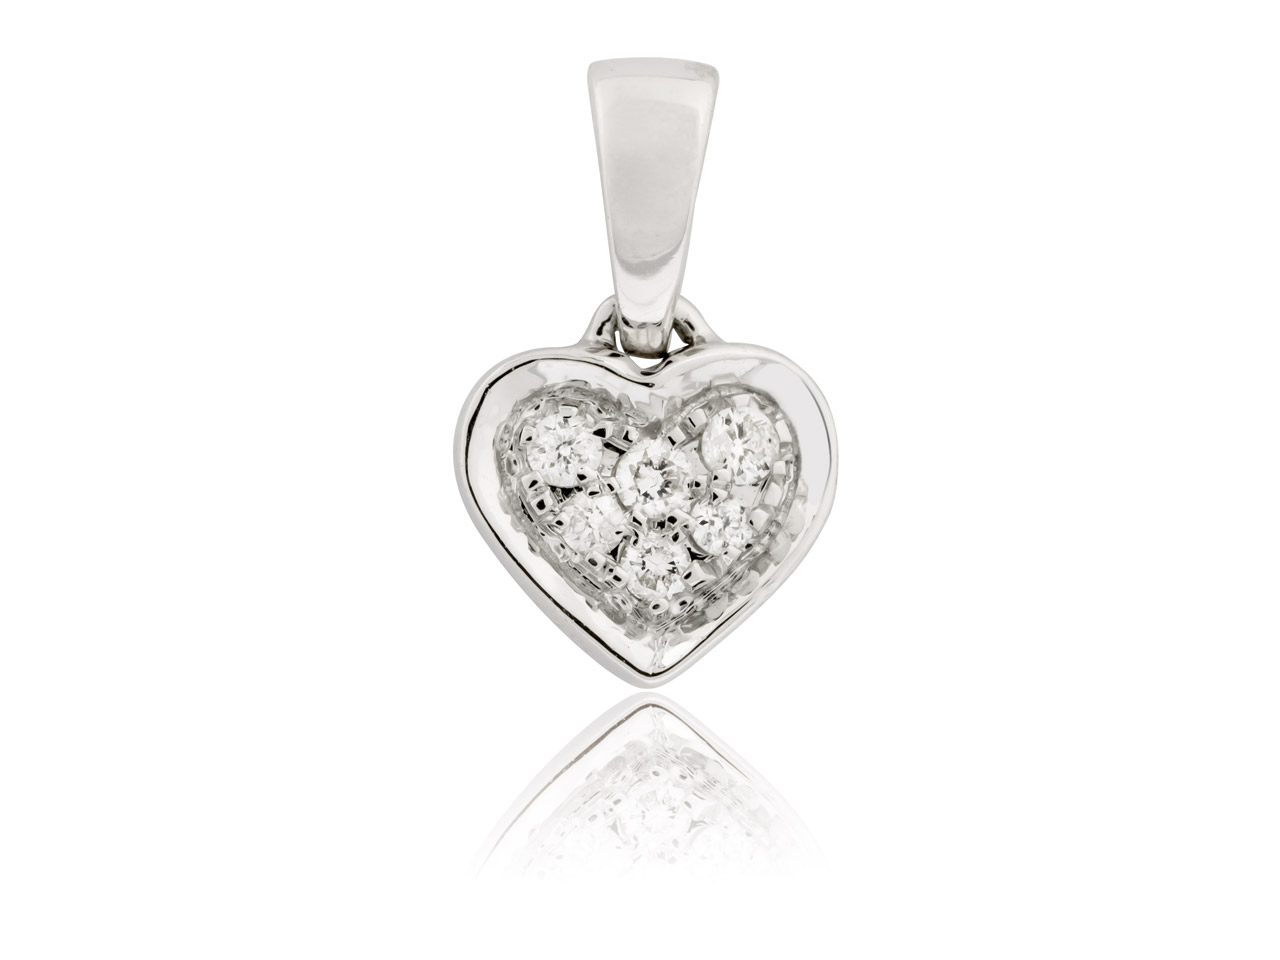 9ct White Heart Pendant With 6 Pave Set Diamonds, 0.05cts